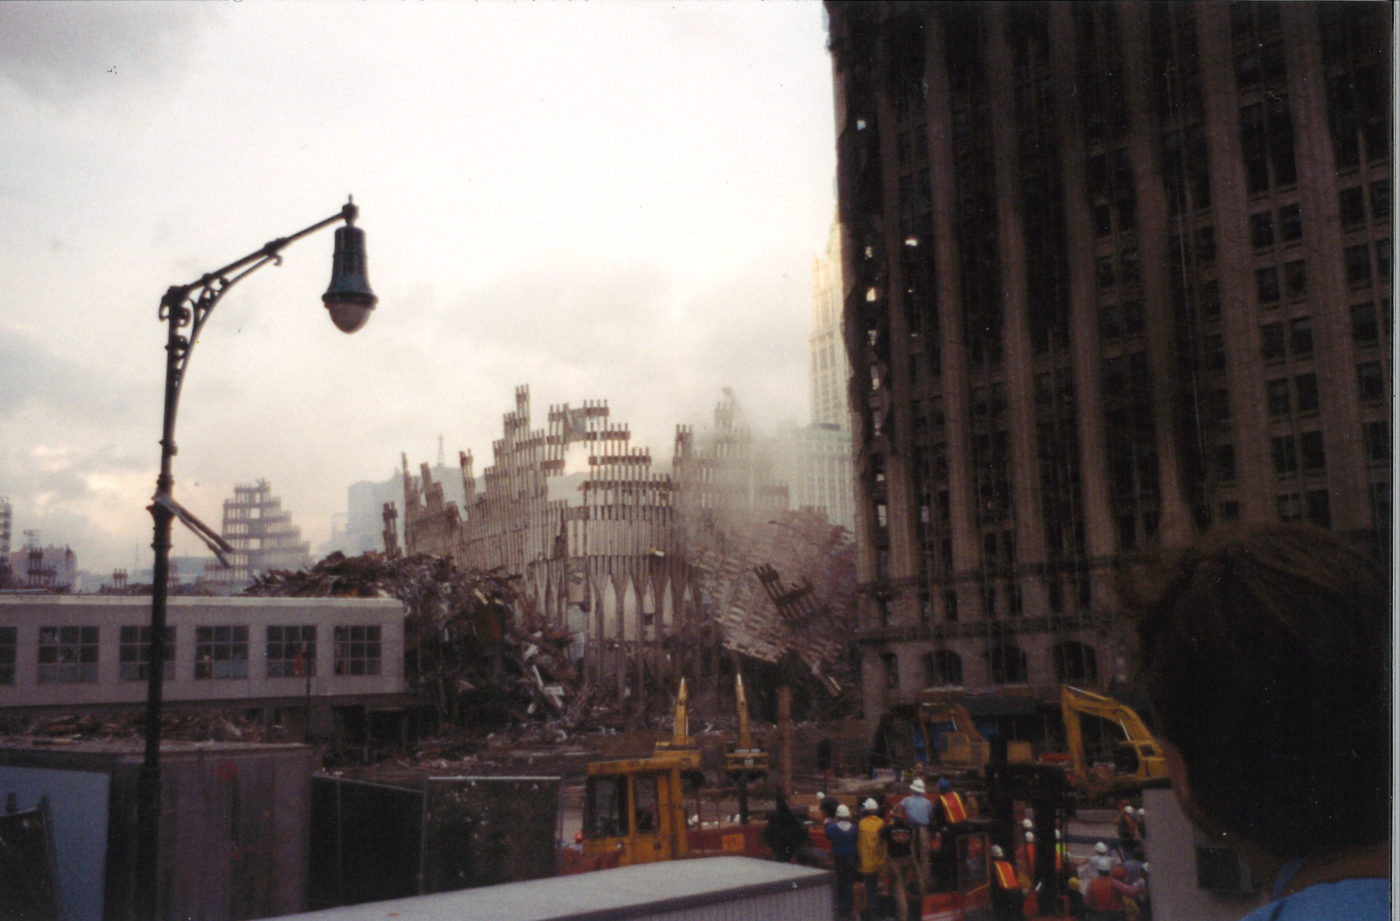 Fallen Exoskeleton with Damaged 90 West Street to the Right